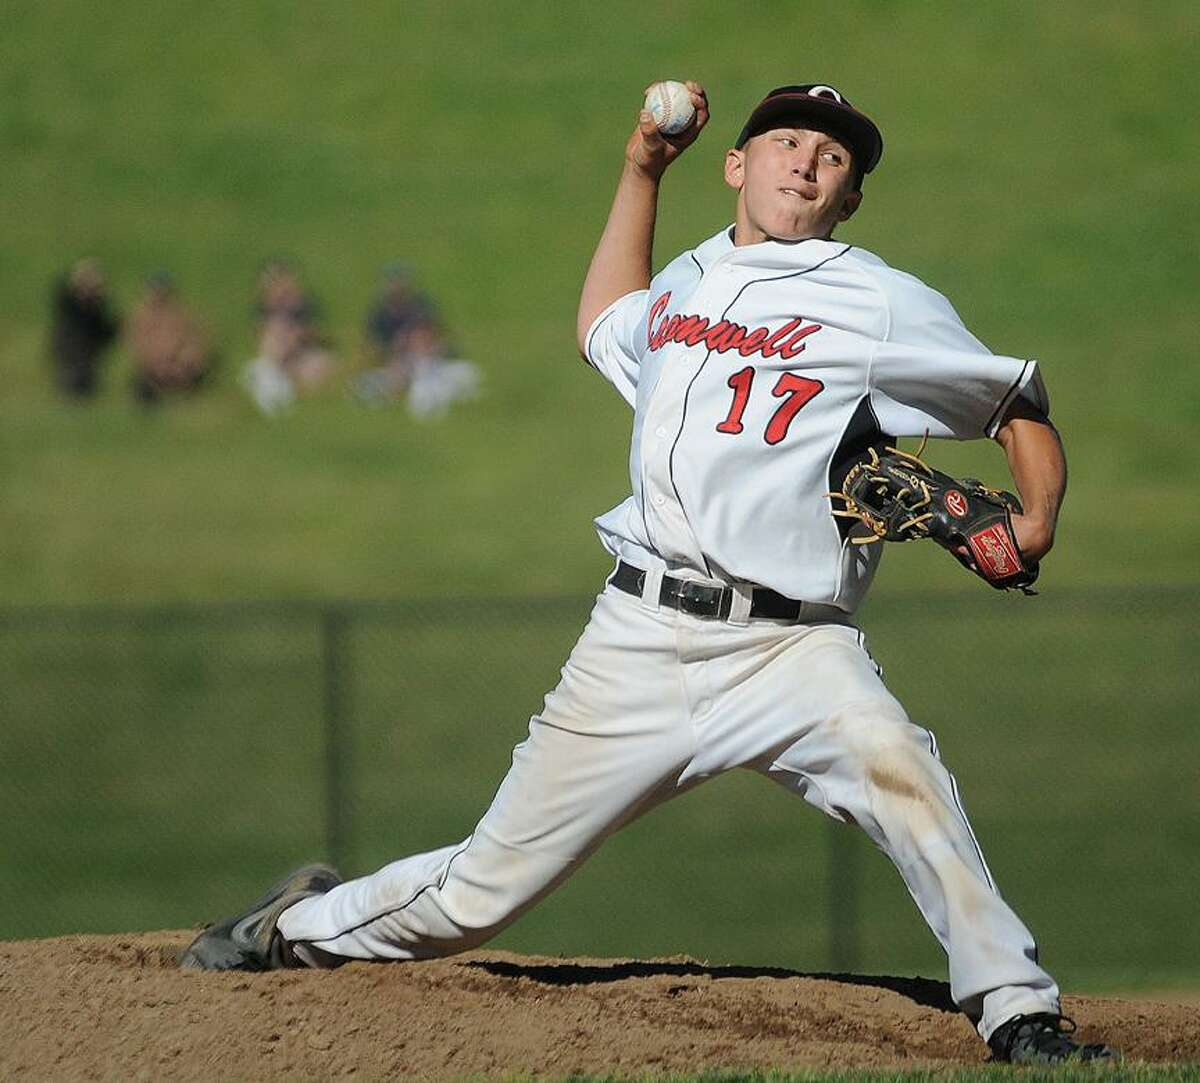 Catherine Avalone/The Middletown PressCromwell senior pitcher Christian Budzik on the mound against East Hampton in the Class S semi final game at Sgt. Zipadelli Field at Sage Park in Berlin Friday afternoon. Cromwell won 3-1 and advances to the state championship game.